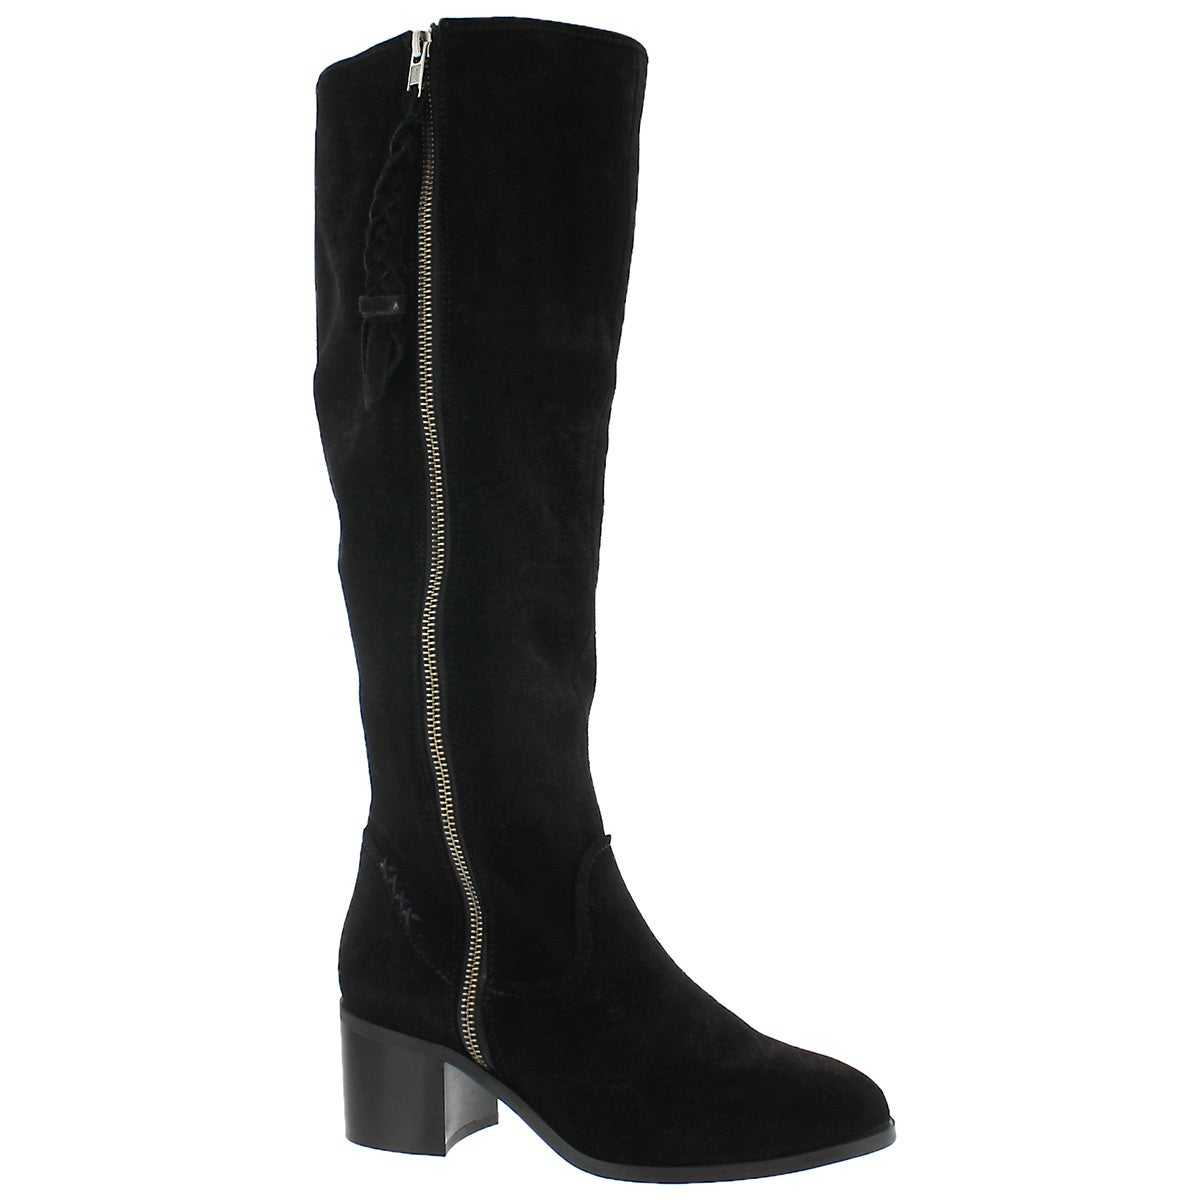 345f5b5ba77 Women's LASSO black knee high dress boots